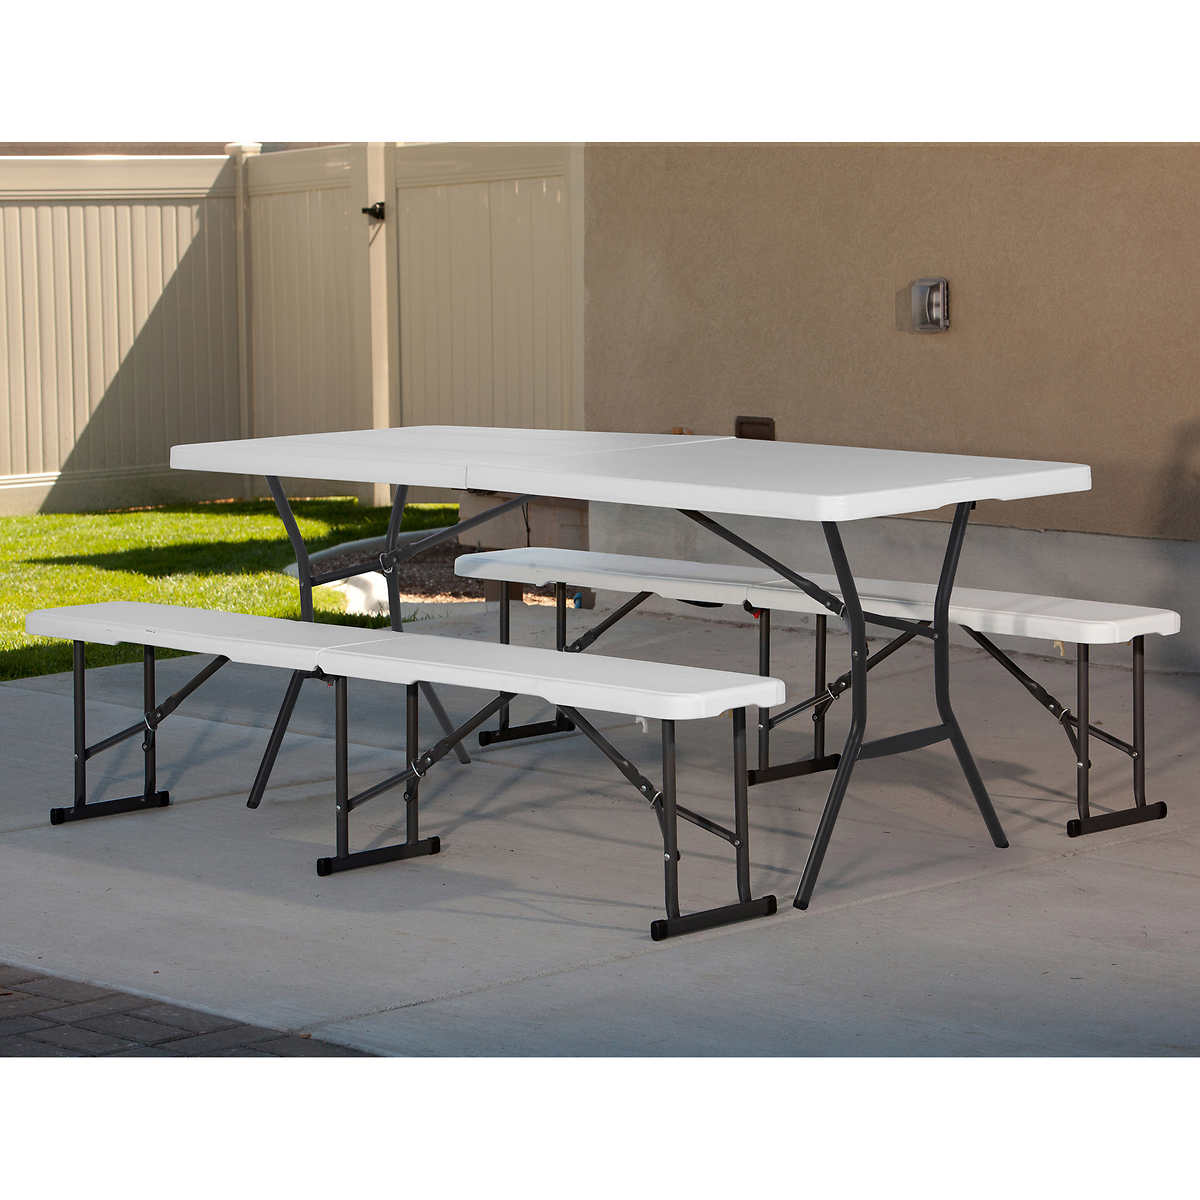 8 ft fold in half table - Lifetime 6 Ft Fold In Half Table With 2 Fold In